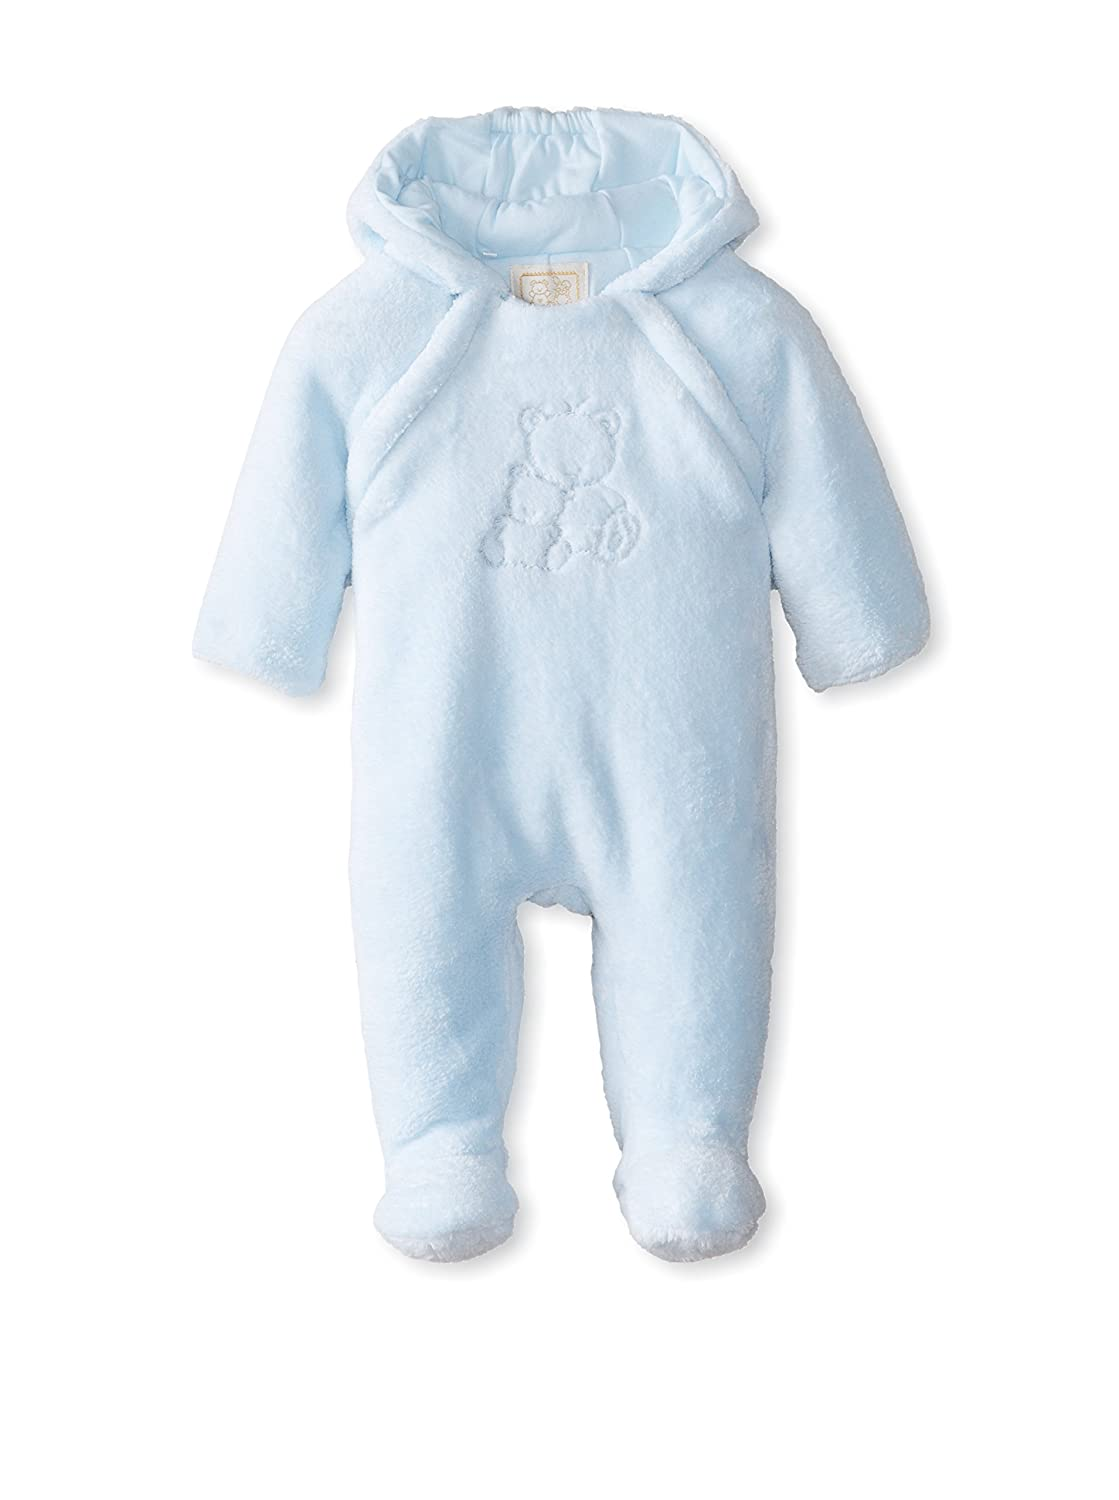 Emile et Rose Baby Boys Blue Bear Fleece Winter Pramsuit Emile-et-rose